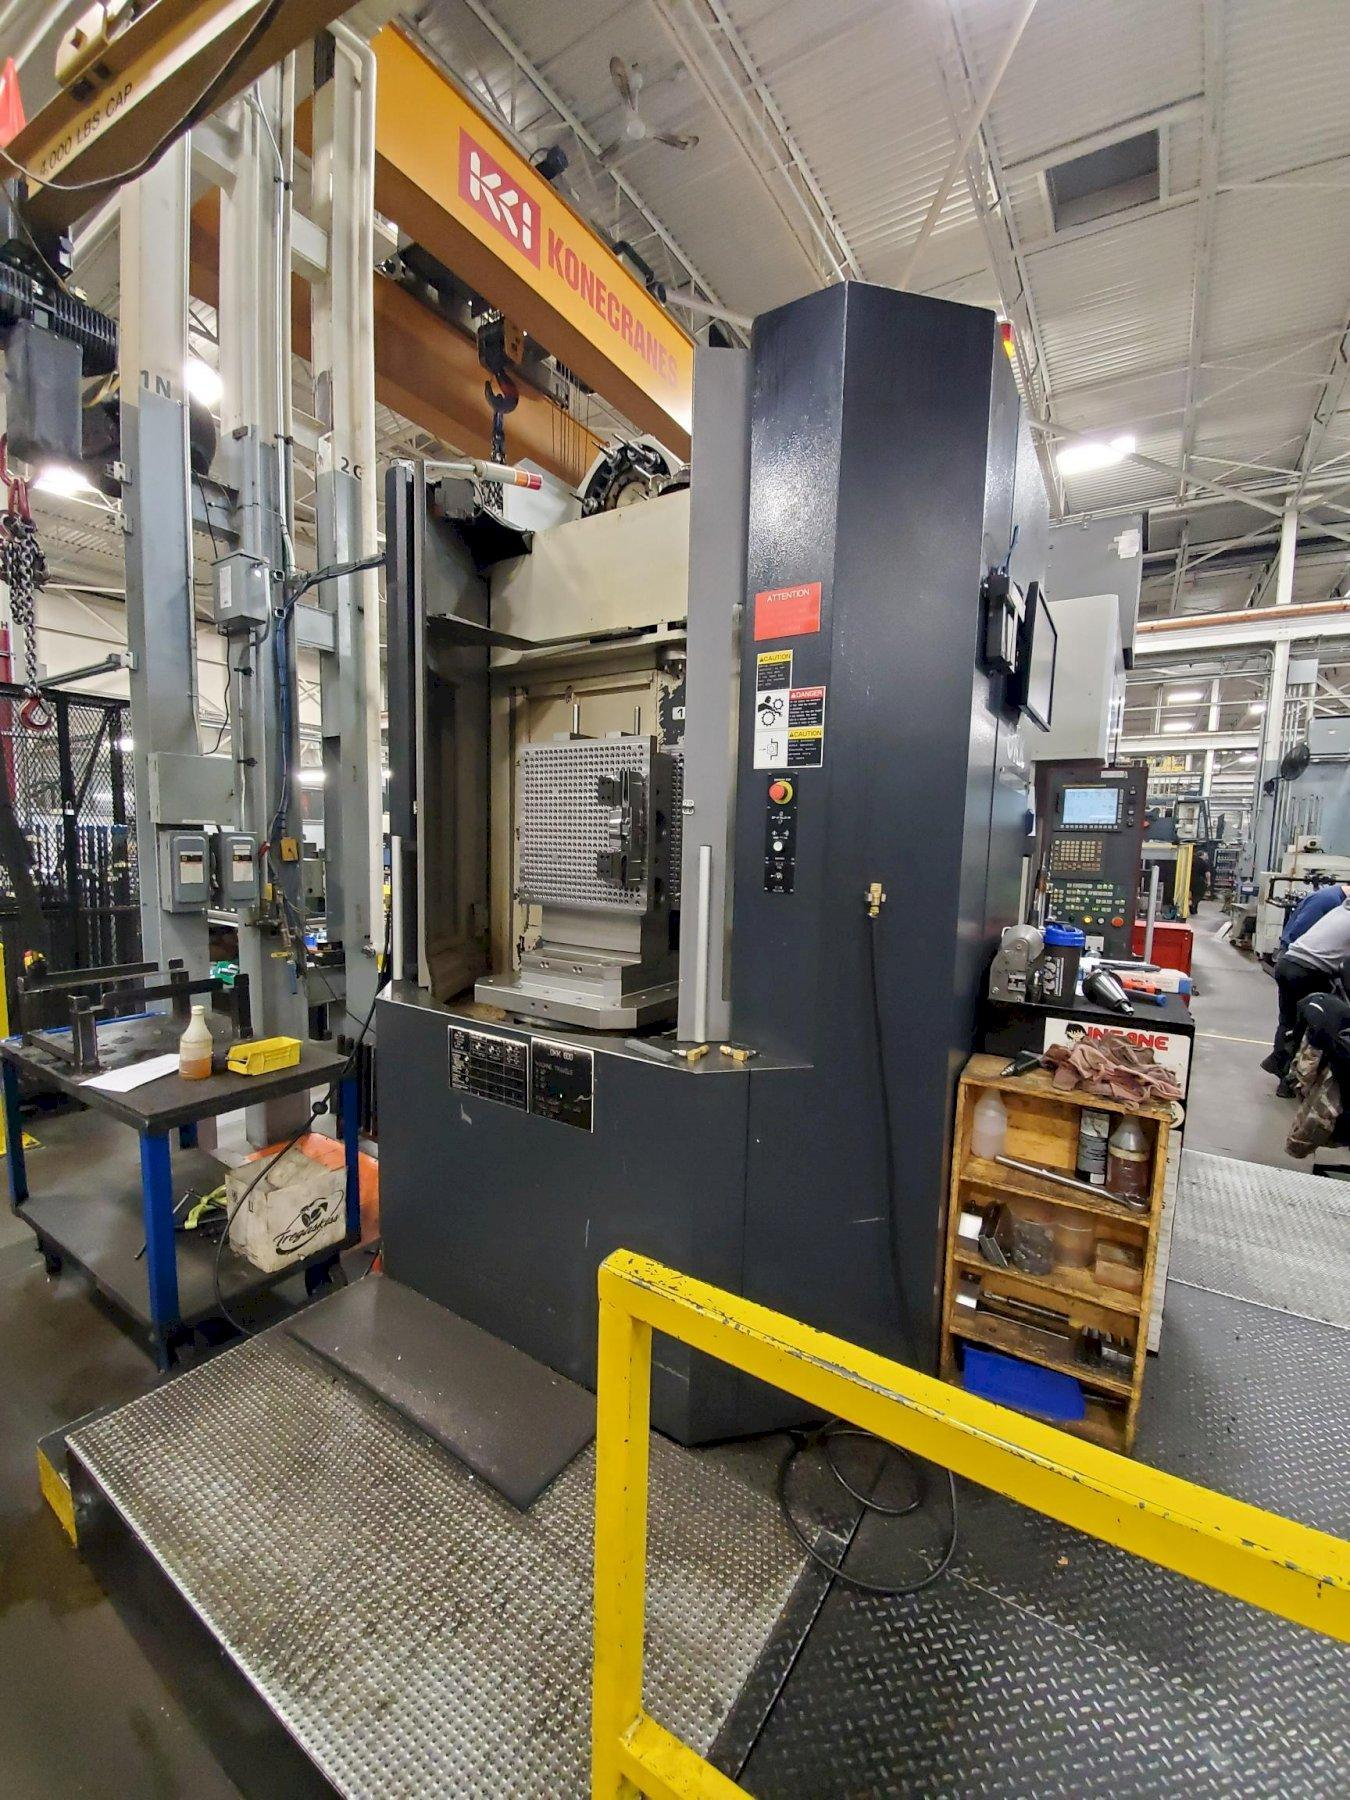 OKK HM600 CNC Horizontal Machining Center, Fanuc 31iMB, Full 4th, 24.8